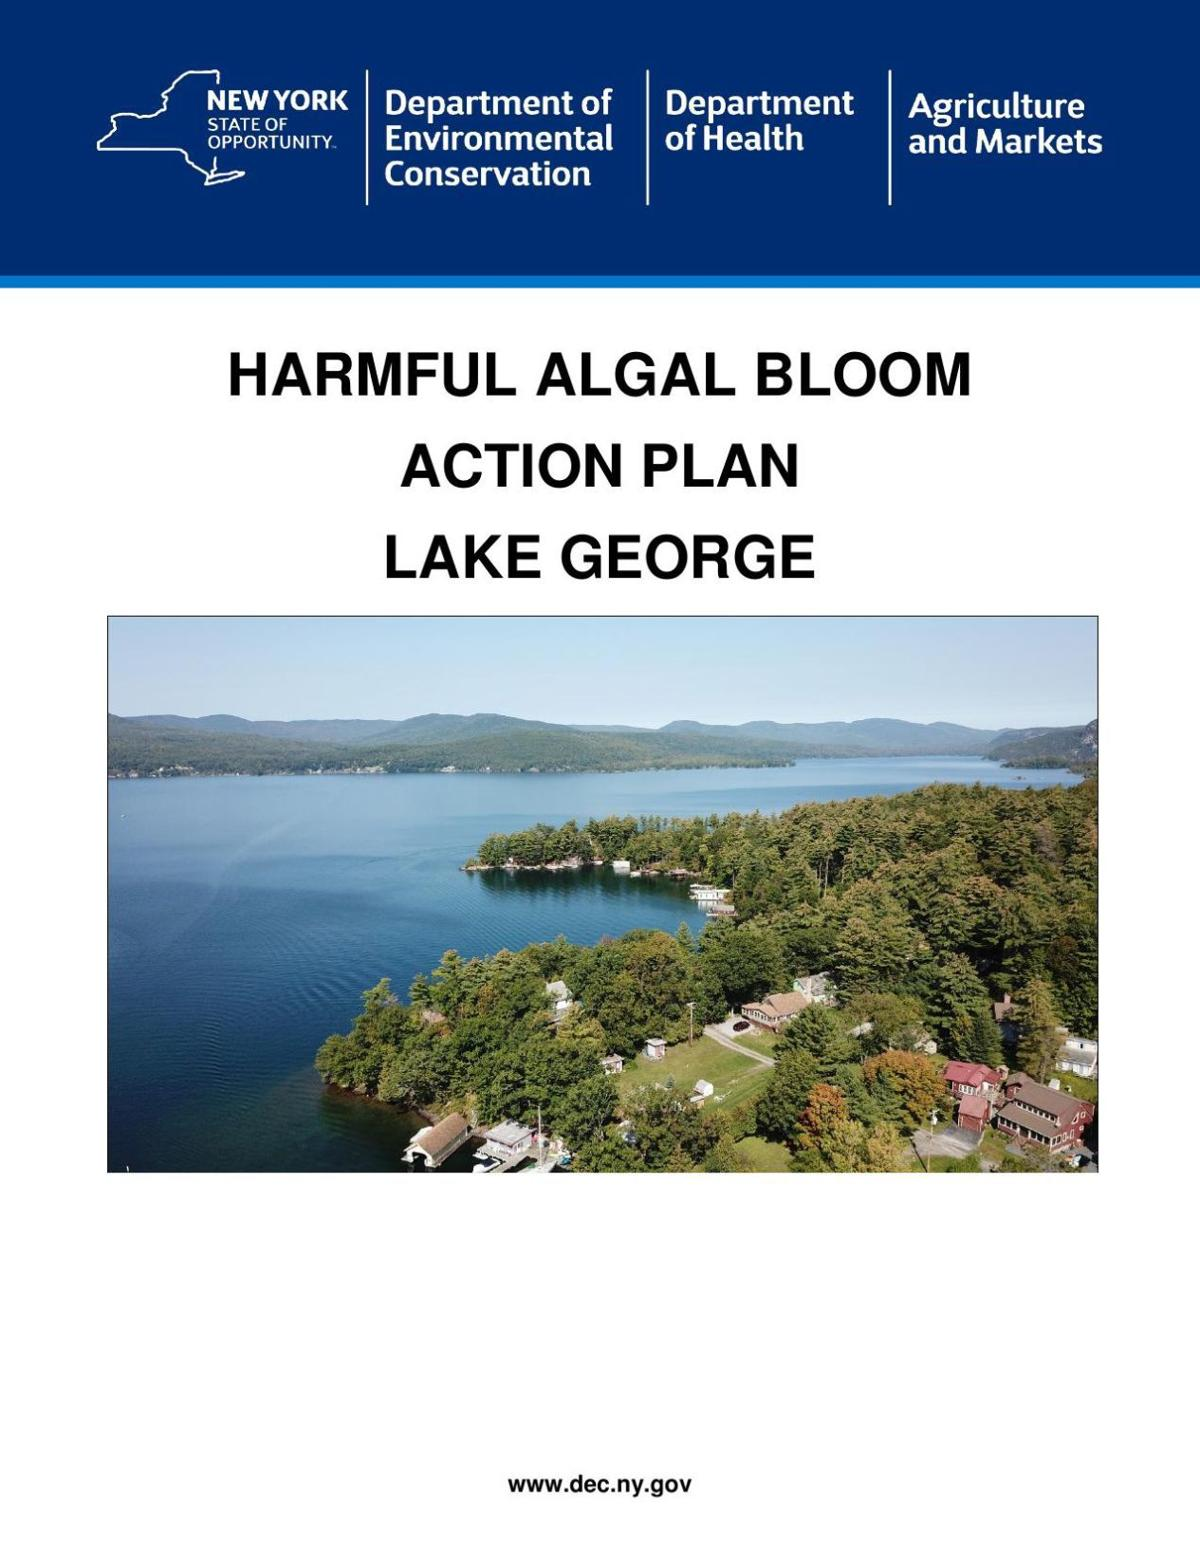 Lake George Harmful Algal Bloom Action Plan